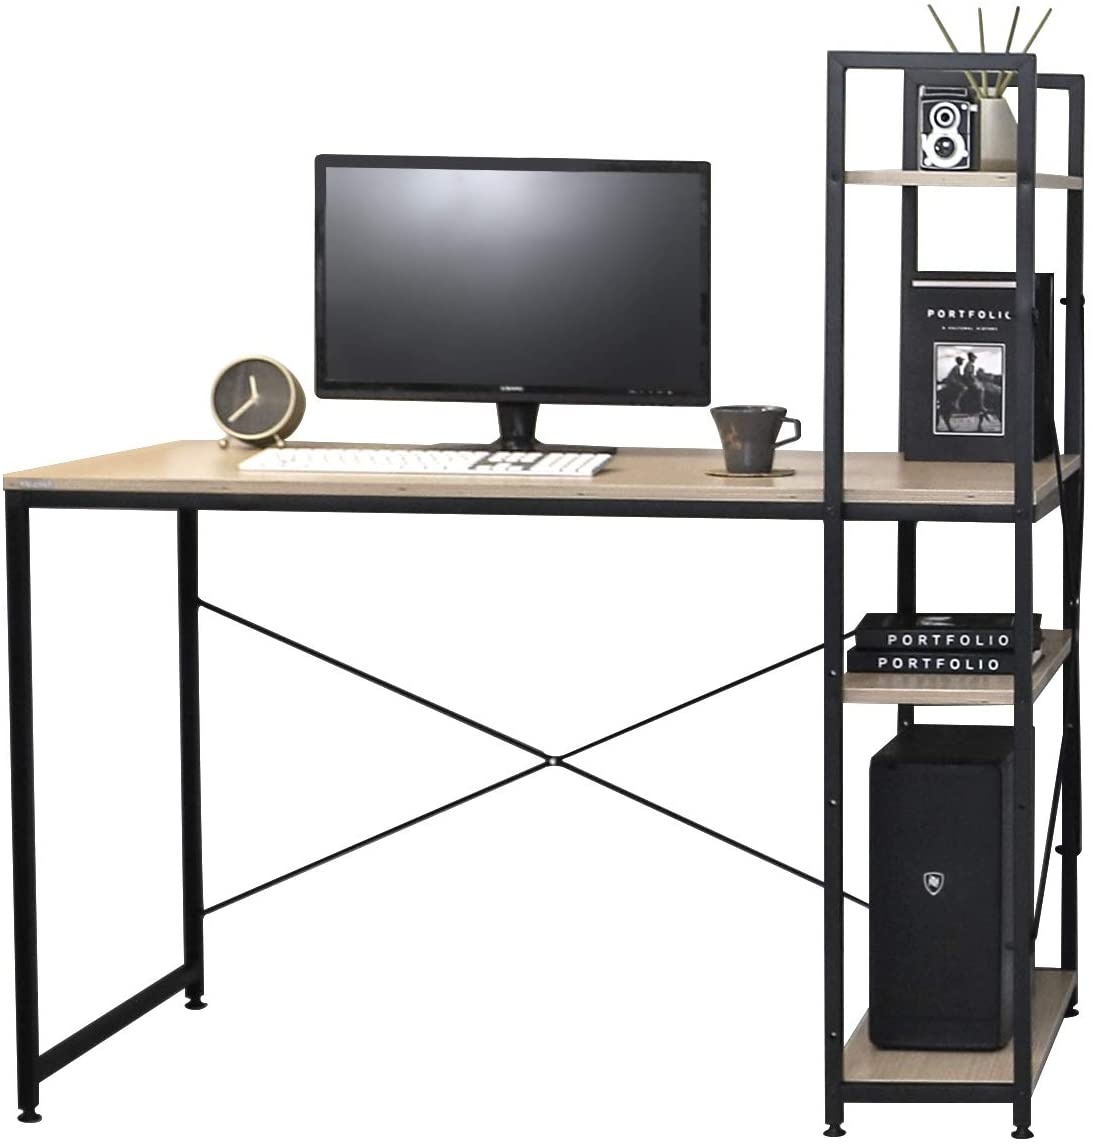 """SOFSYS Alpha Series 47.2"""" Computer Desk with Bookshelf Storage, All-in-One Workstation with Long Table Working Surface, Multi-Tiered Shelving for Home Office or Gaming, Oak/Black"""